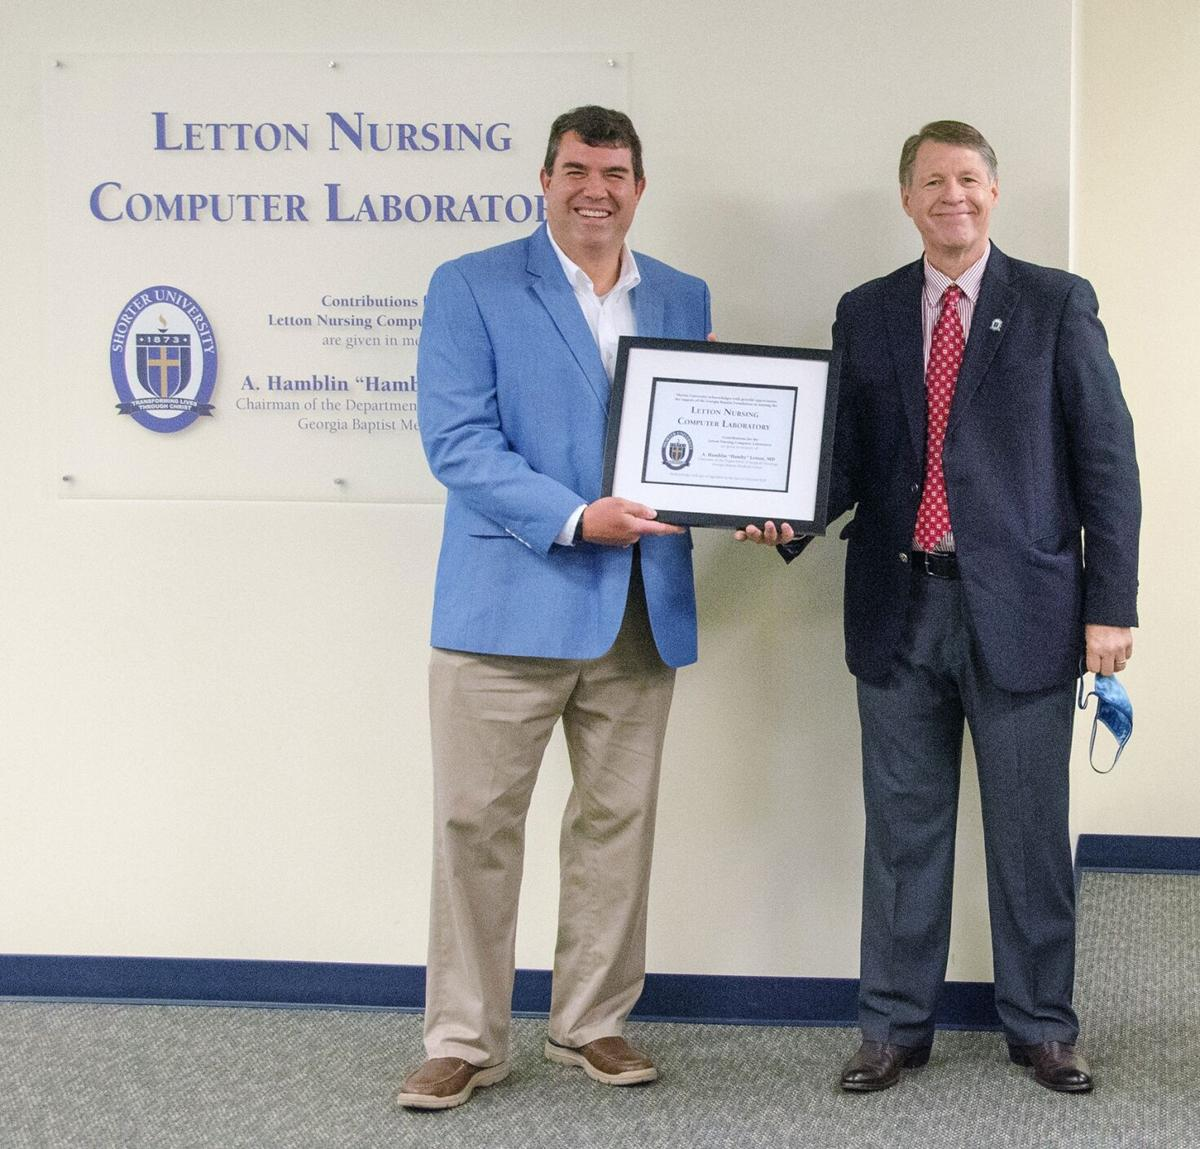 Nursing computer lab at Shorter named in memory of renowned surgical oncologist